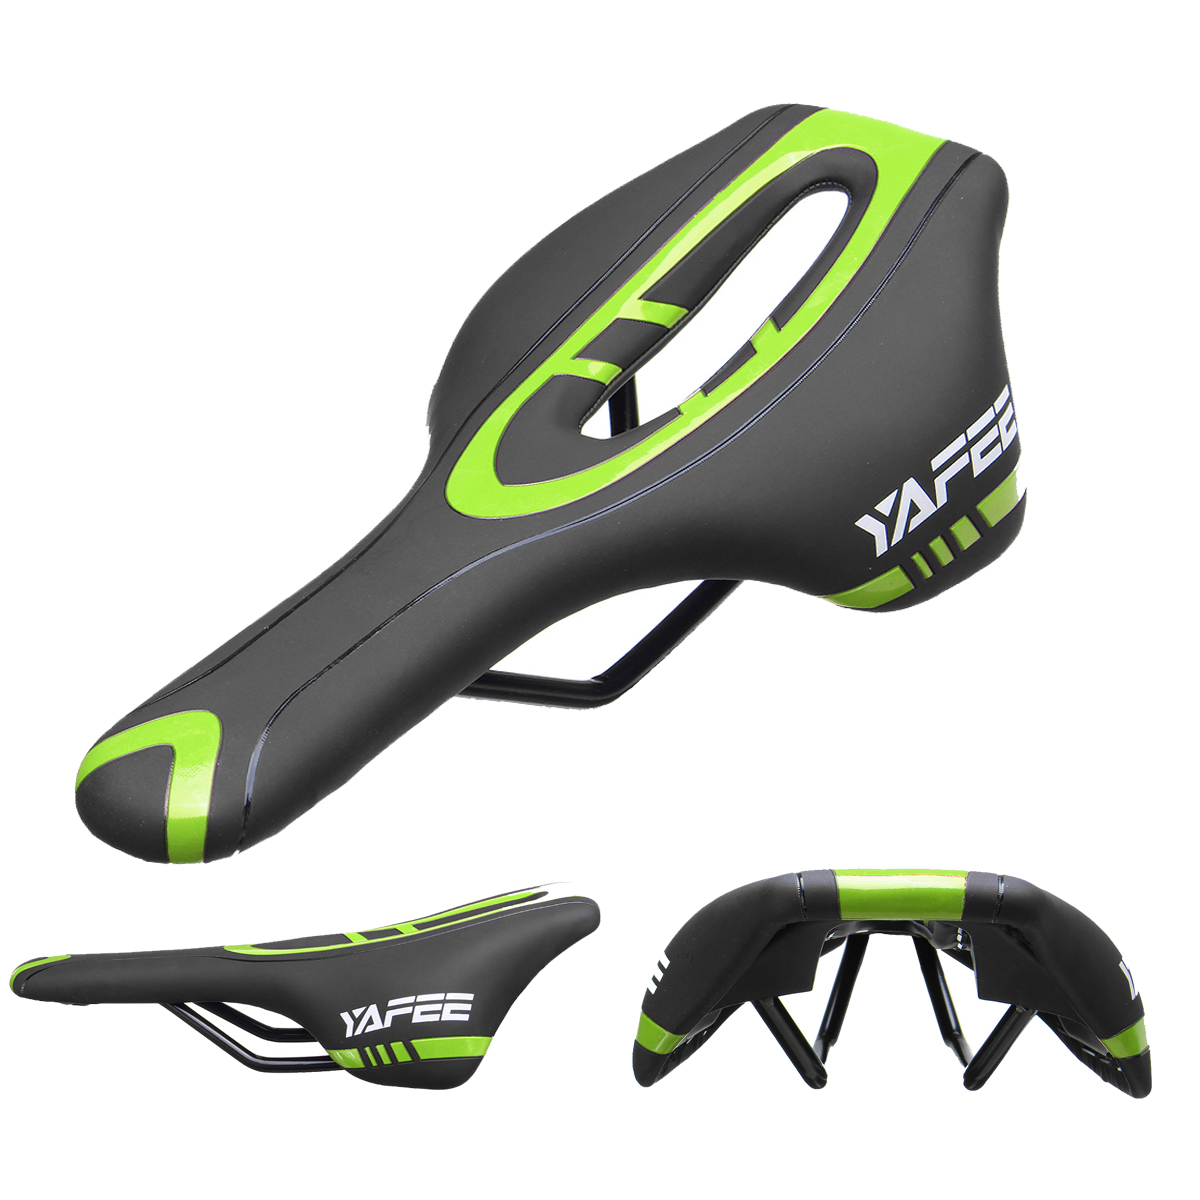 Hollow Bike MTB Gel Saddle Seat Road Bicycle Cycling Soft Cushion Pad Sport